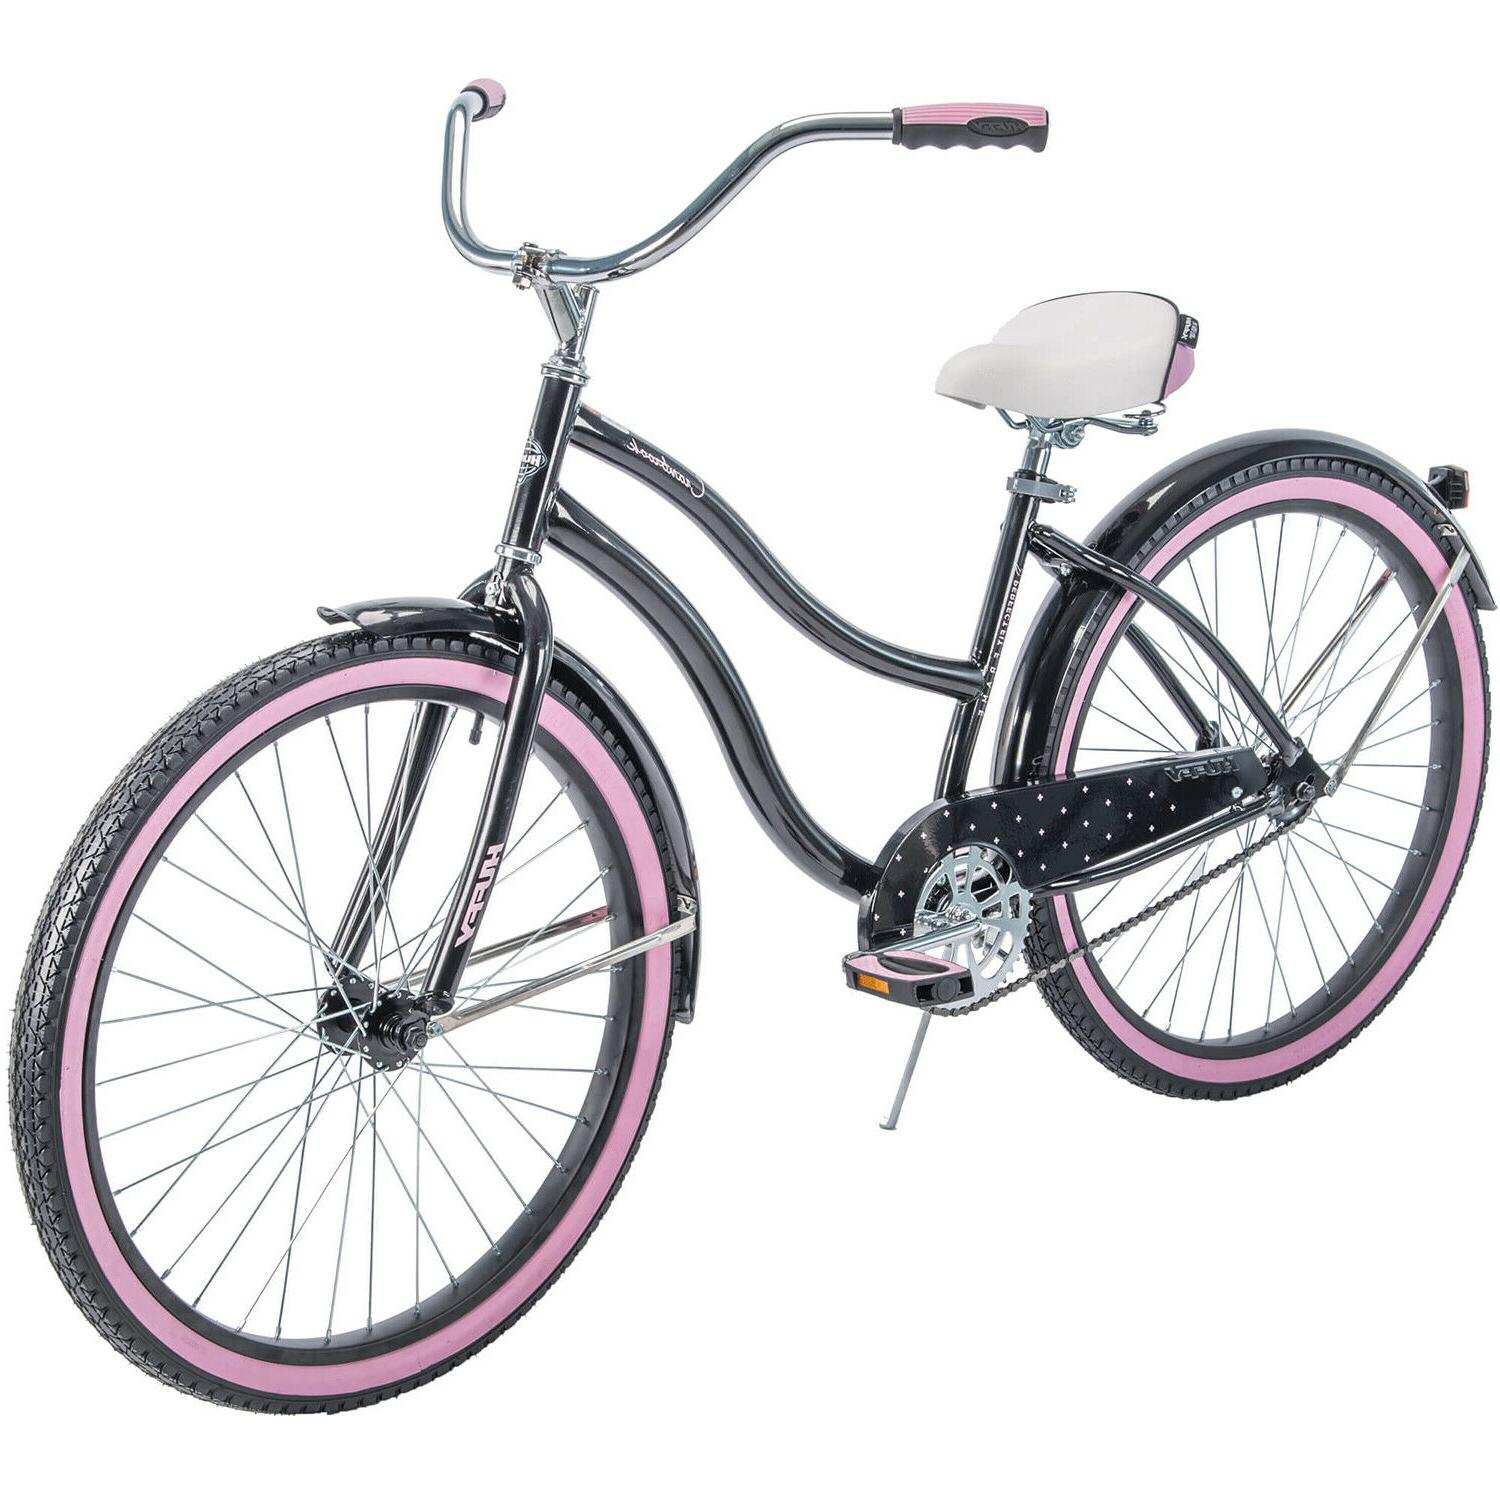 "Huffy Women's Cruiser Bike 26"" Beach City Bicycle Comfort Ri"